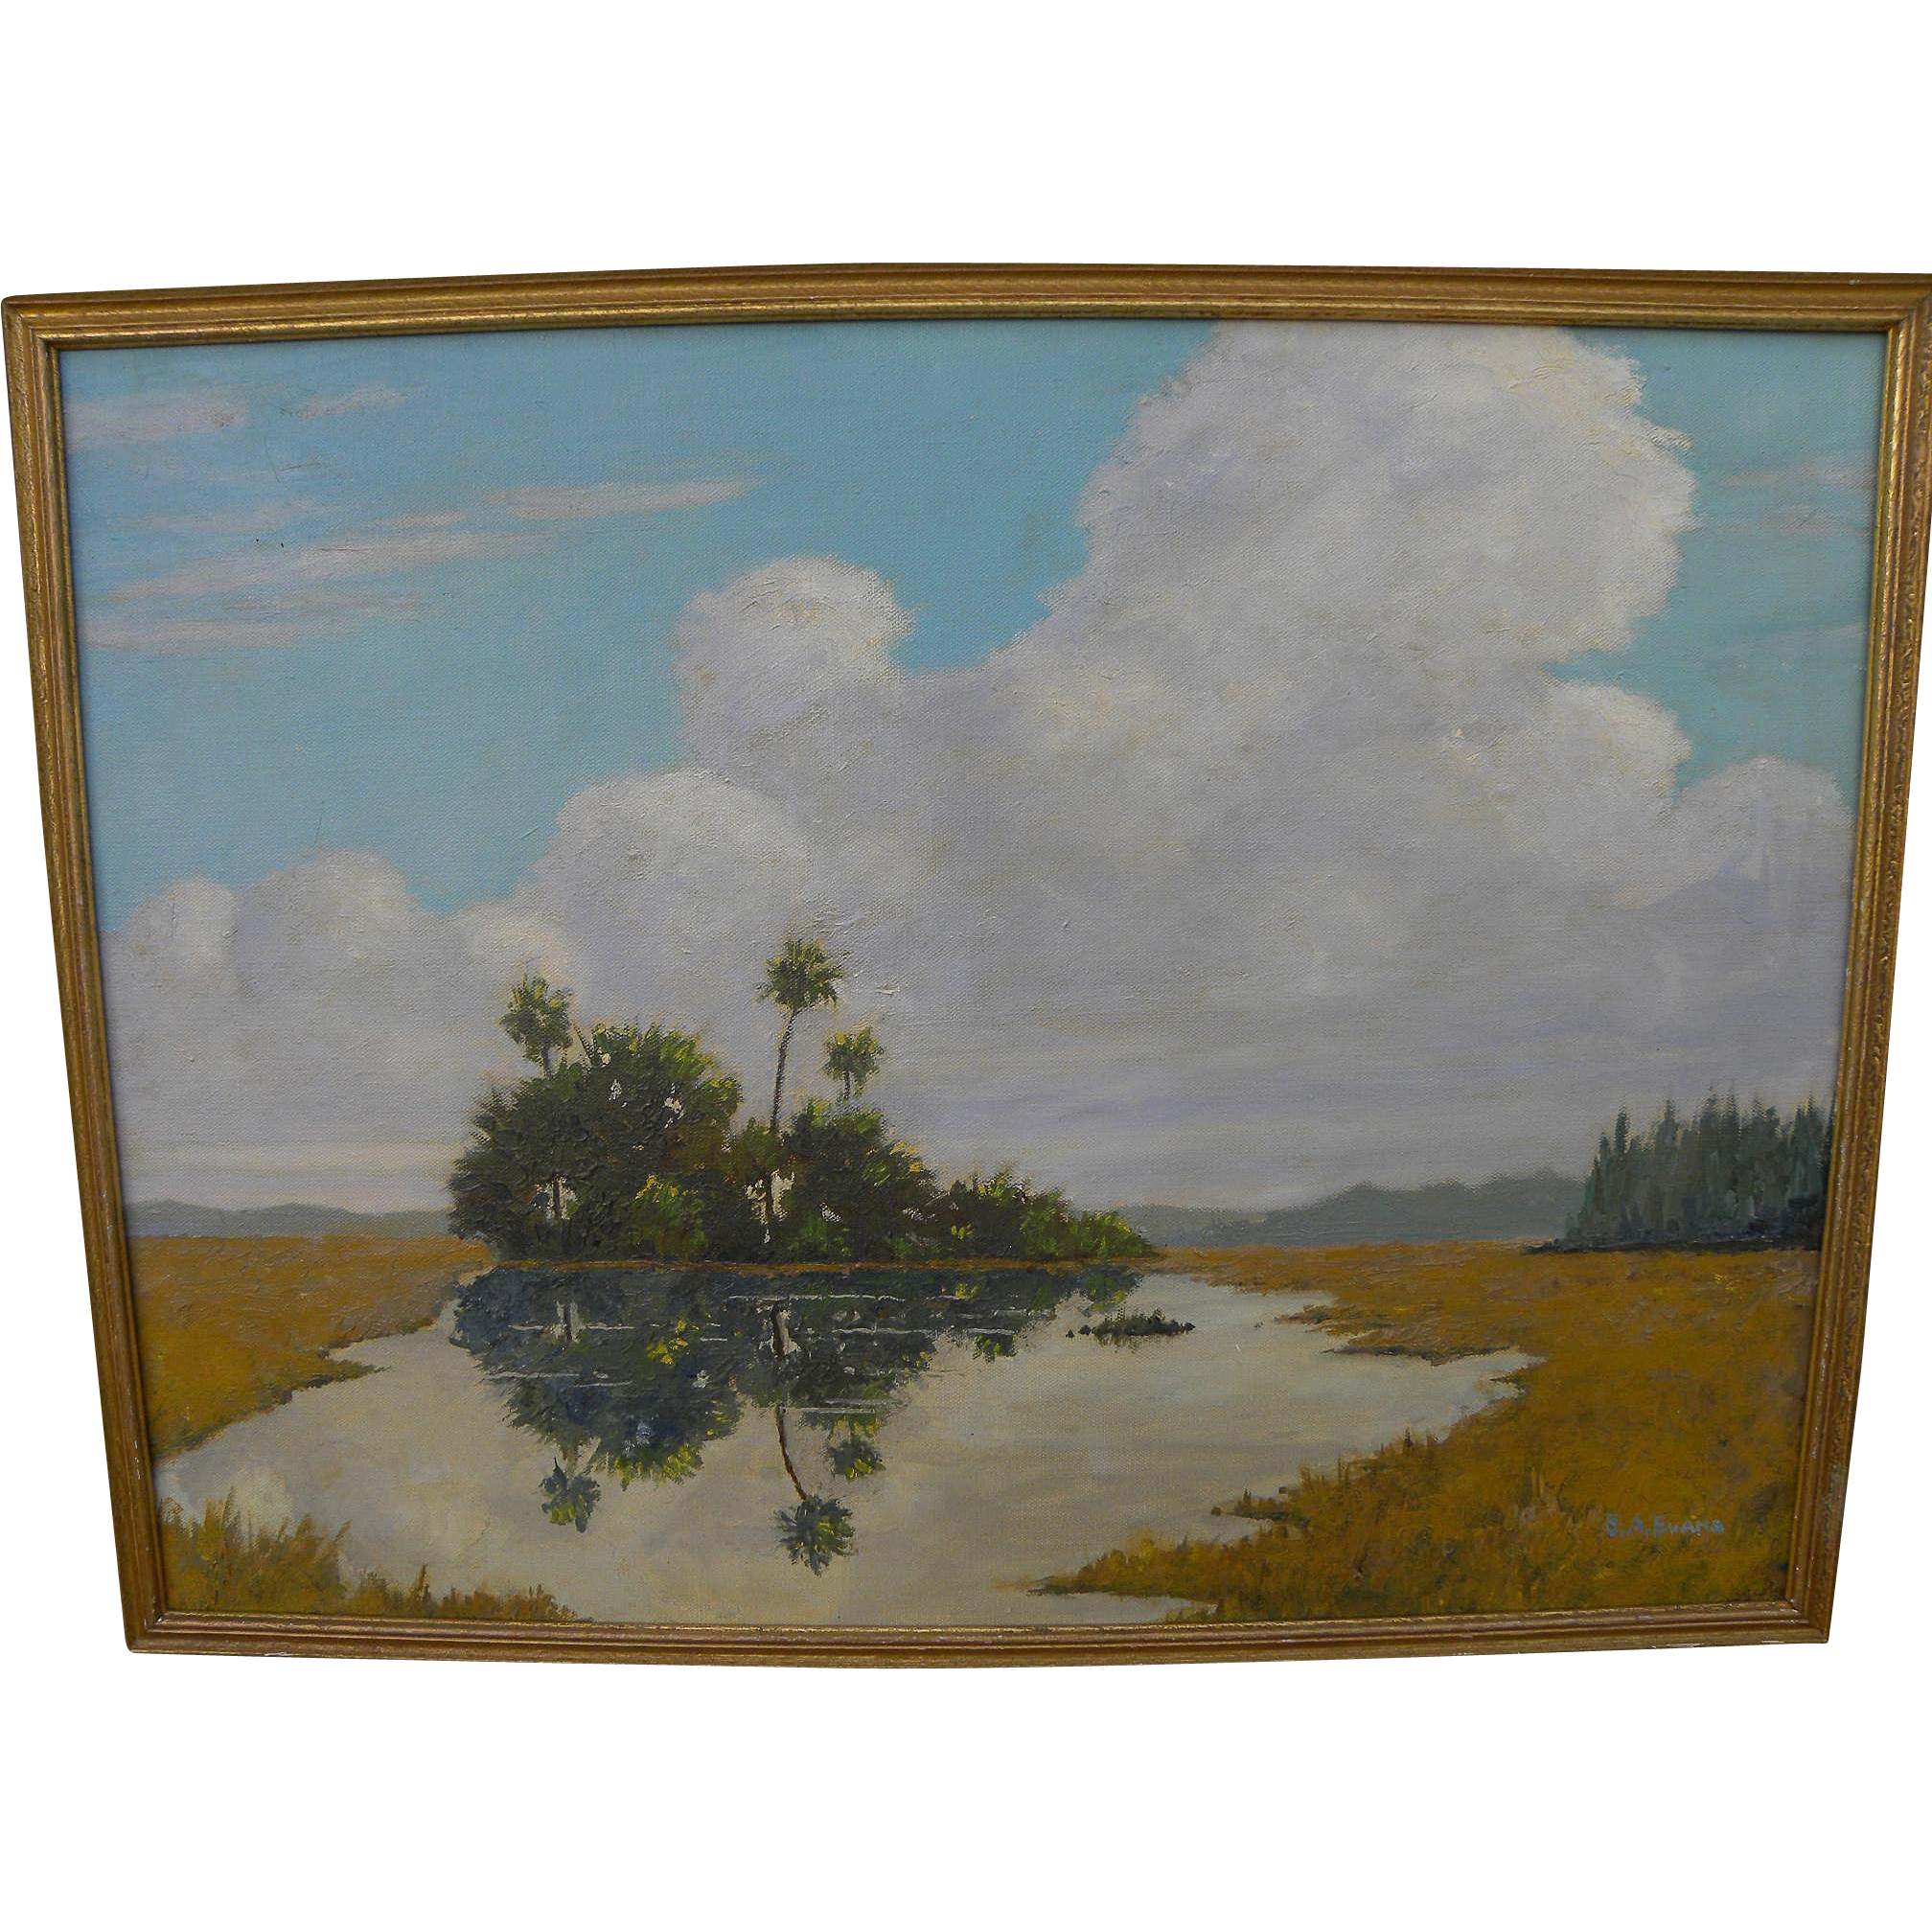 Florida art vintage Everglades oil painting signed by professional artist EDWARD ARTHUR EVANS (1895-)